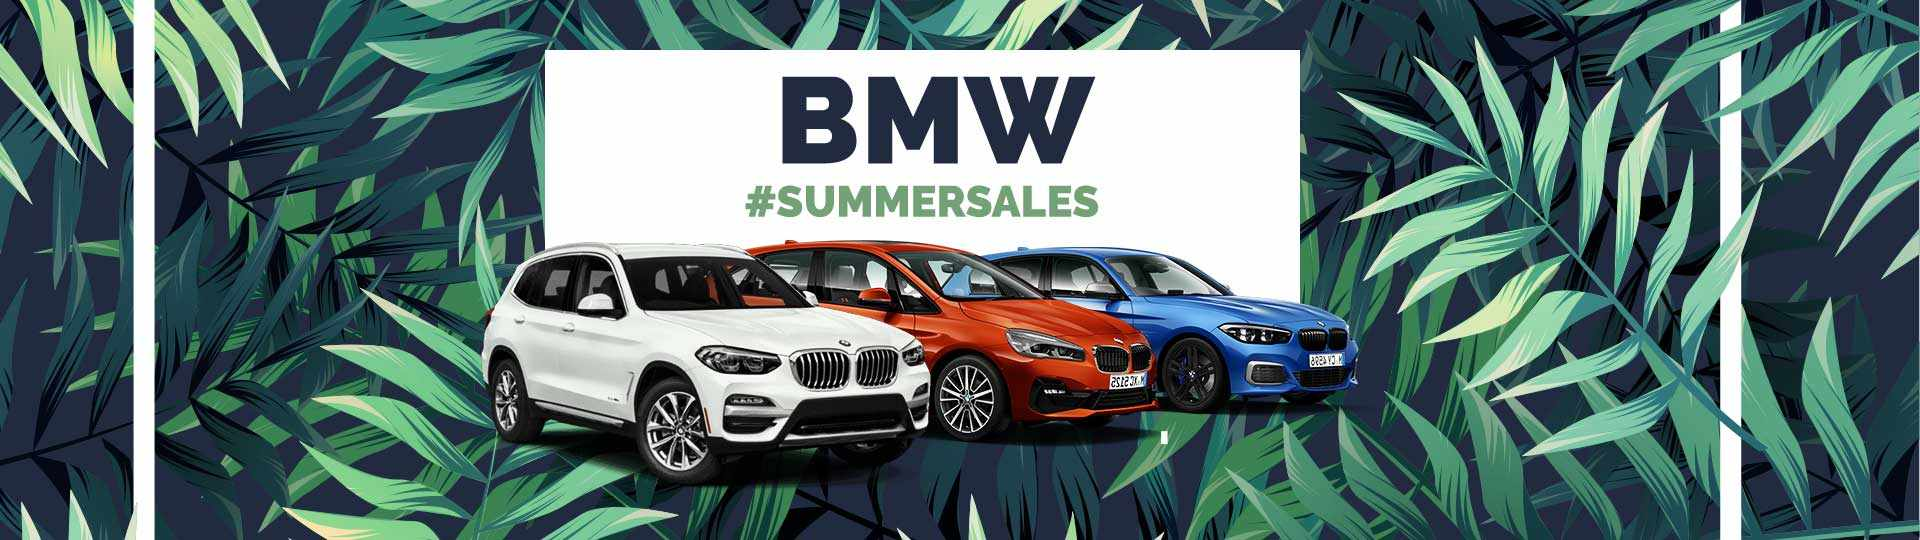 hd_bmw_summer.jpg